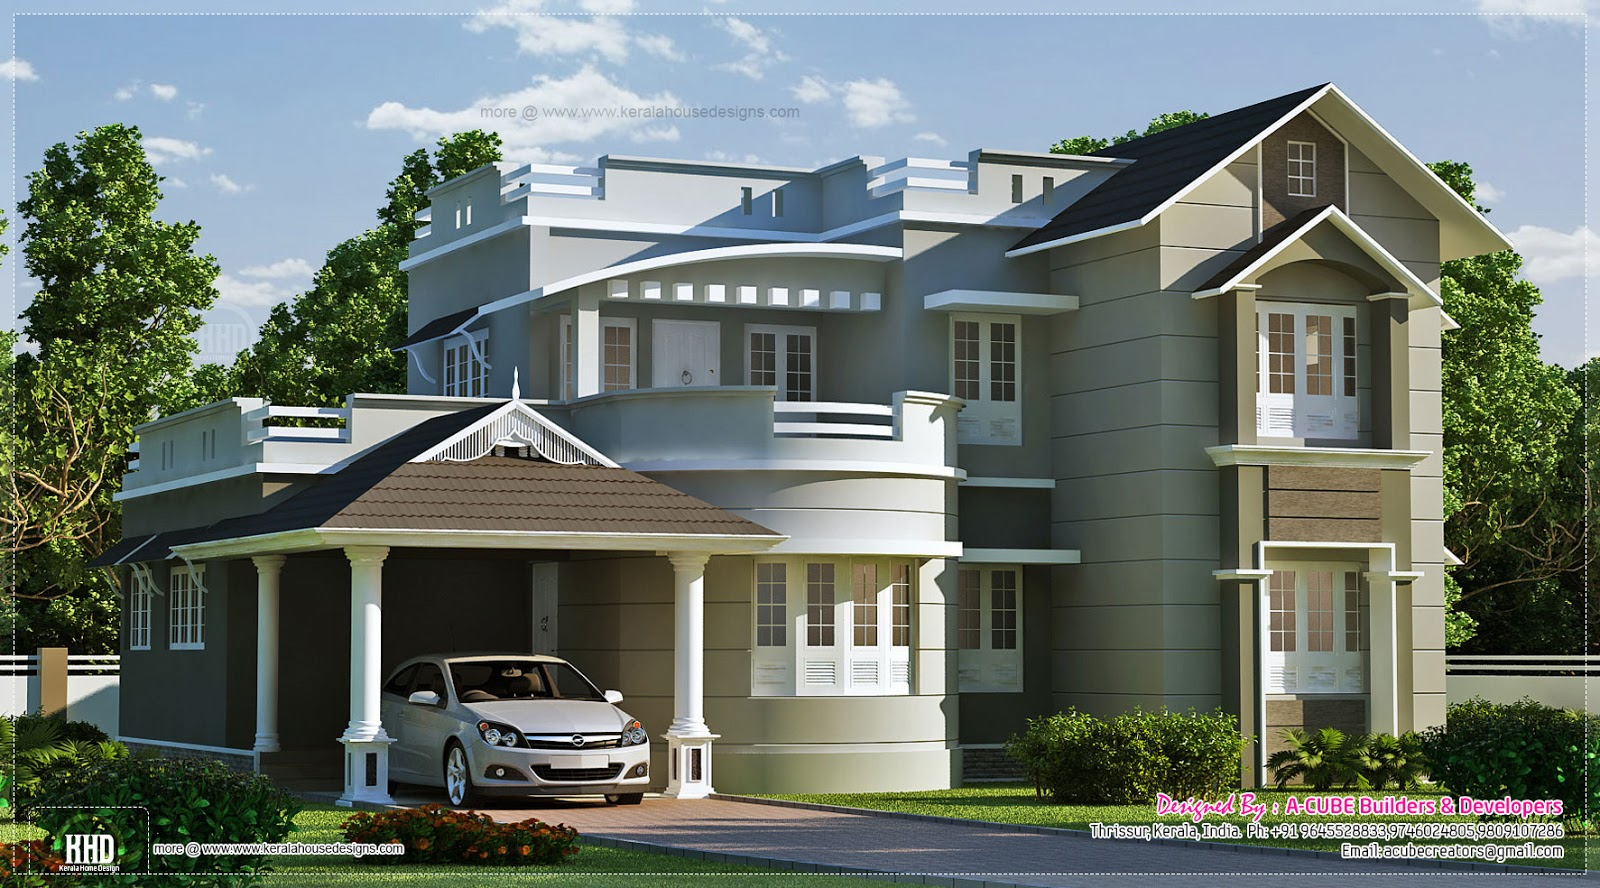 New style home exterior in 1800 kerala home for Blue print homes